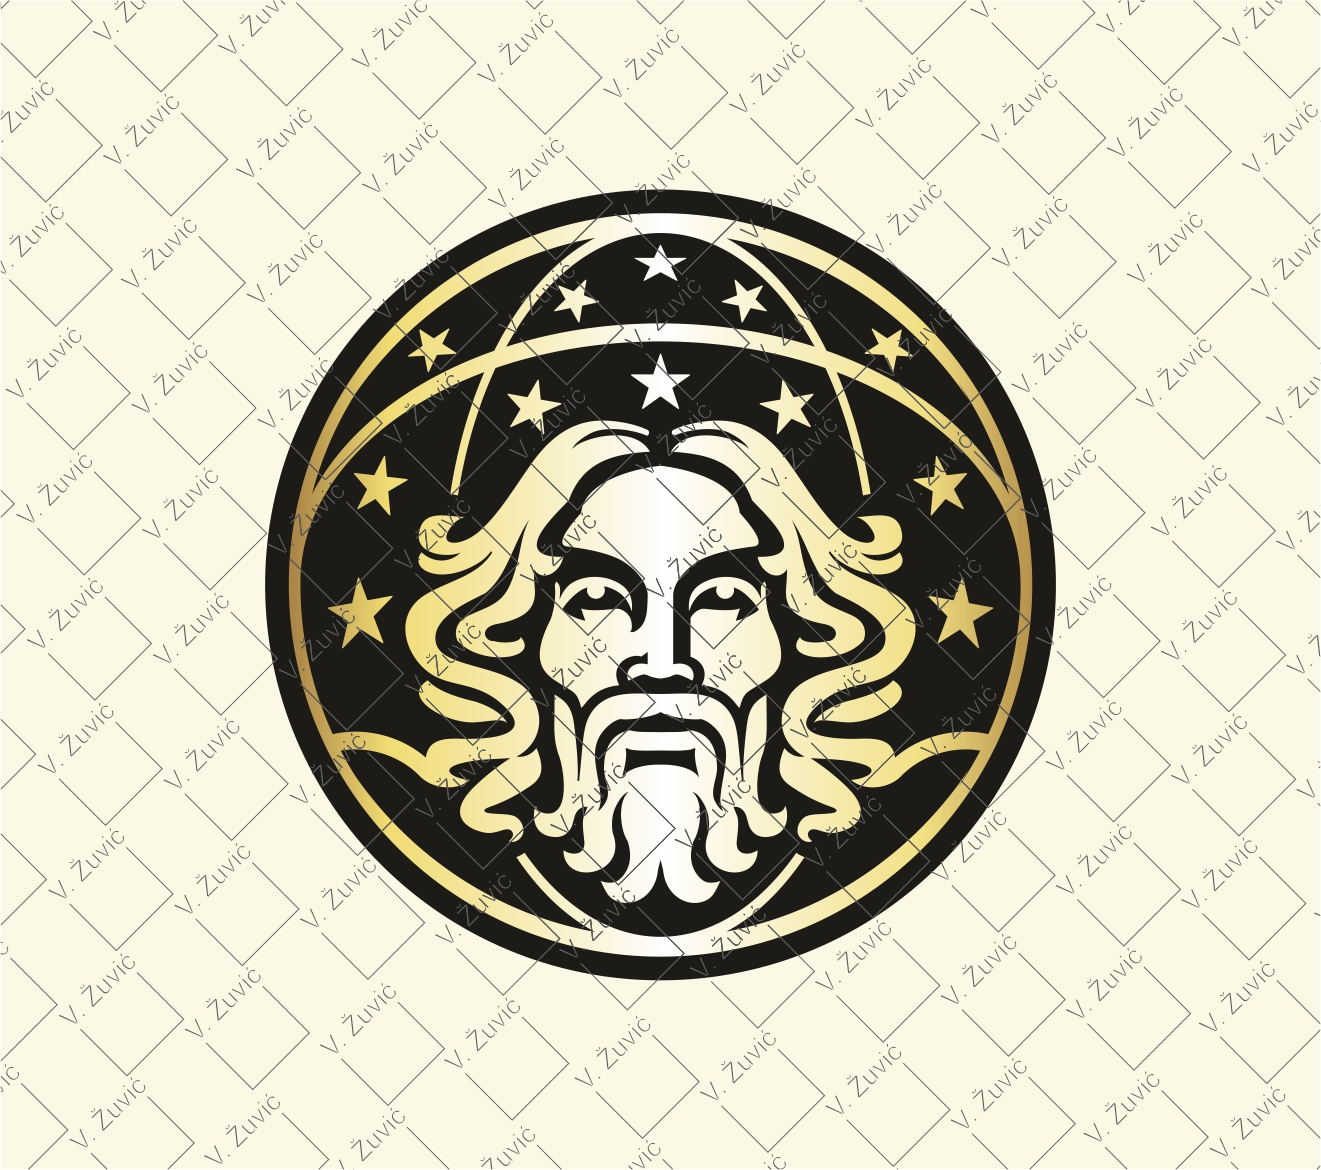 Atlas logo. Logo is avaliable for sale. Atlas holding an earth with stars.   Atlas logotip je dostupan za prodaju.